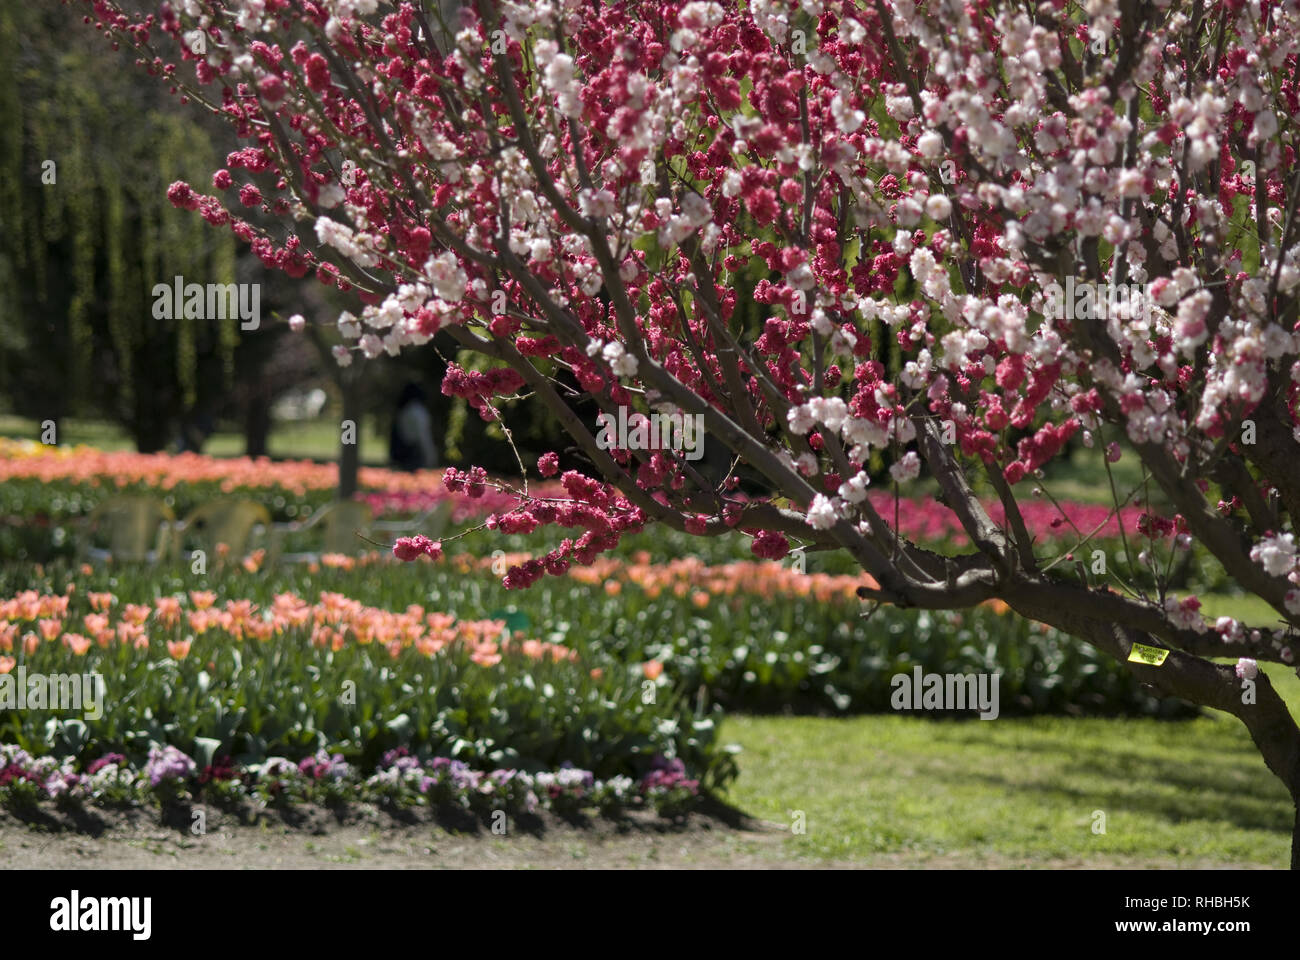 Cherry Blossom And Tulip High Resolution Stock Photography And Images Alamy